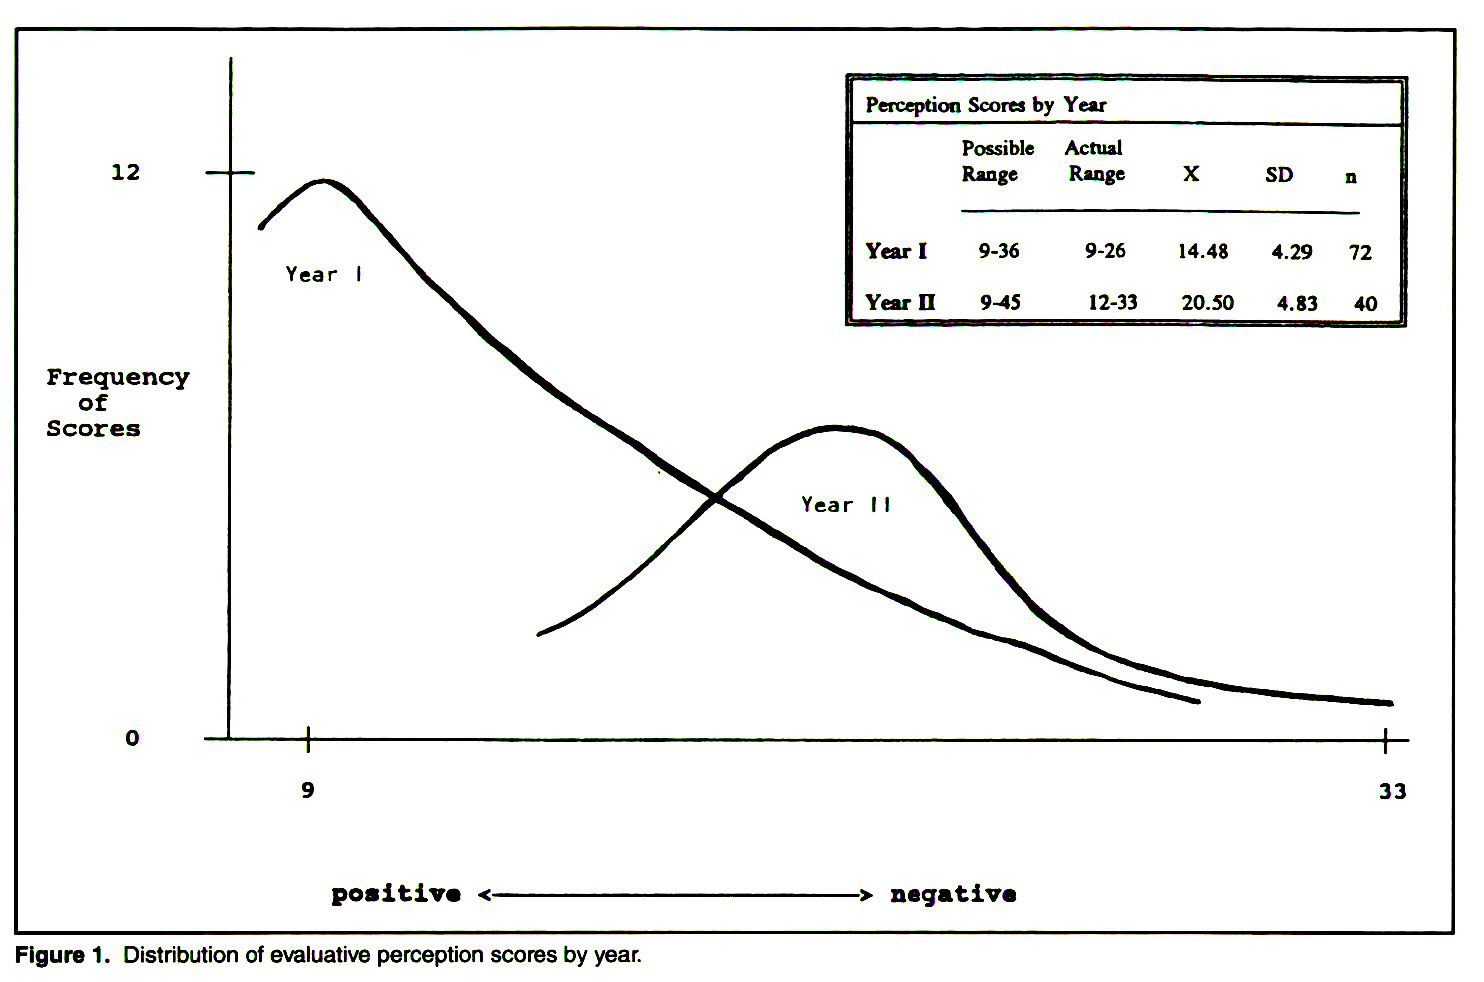 Figure 1. Distribution of evaluative perception scores by year.